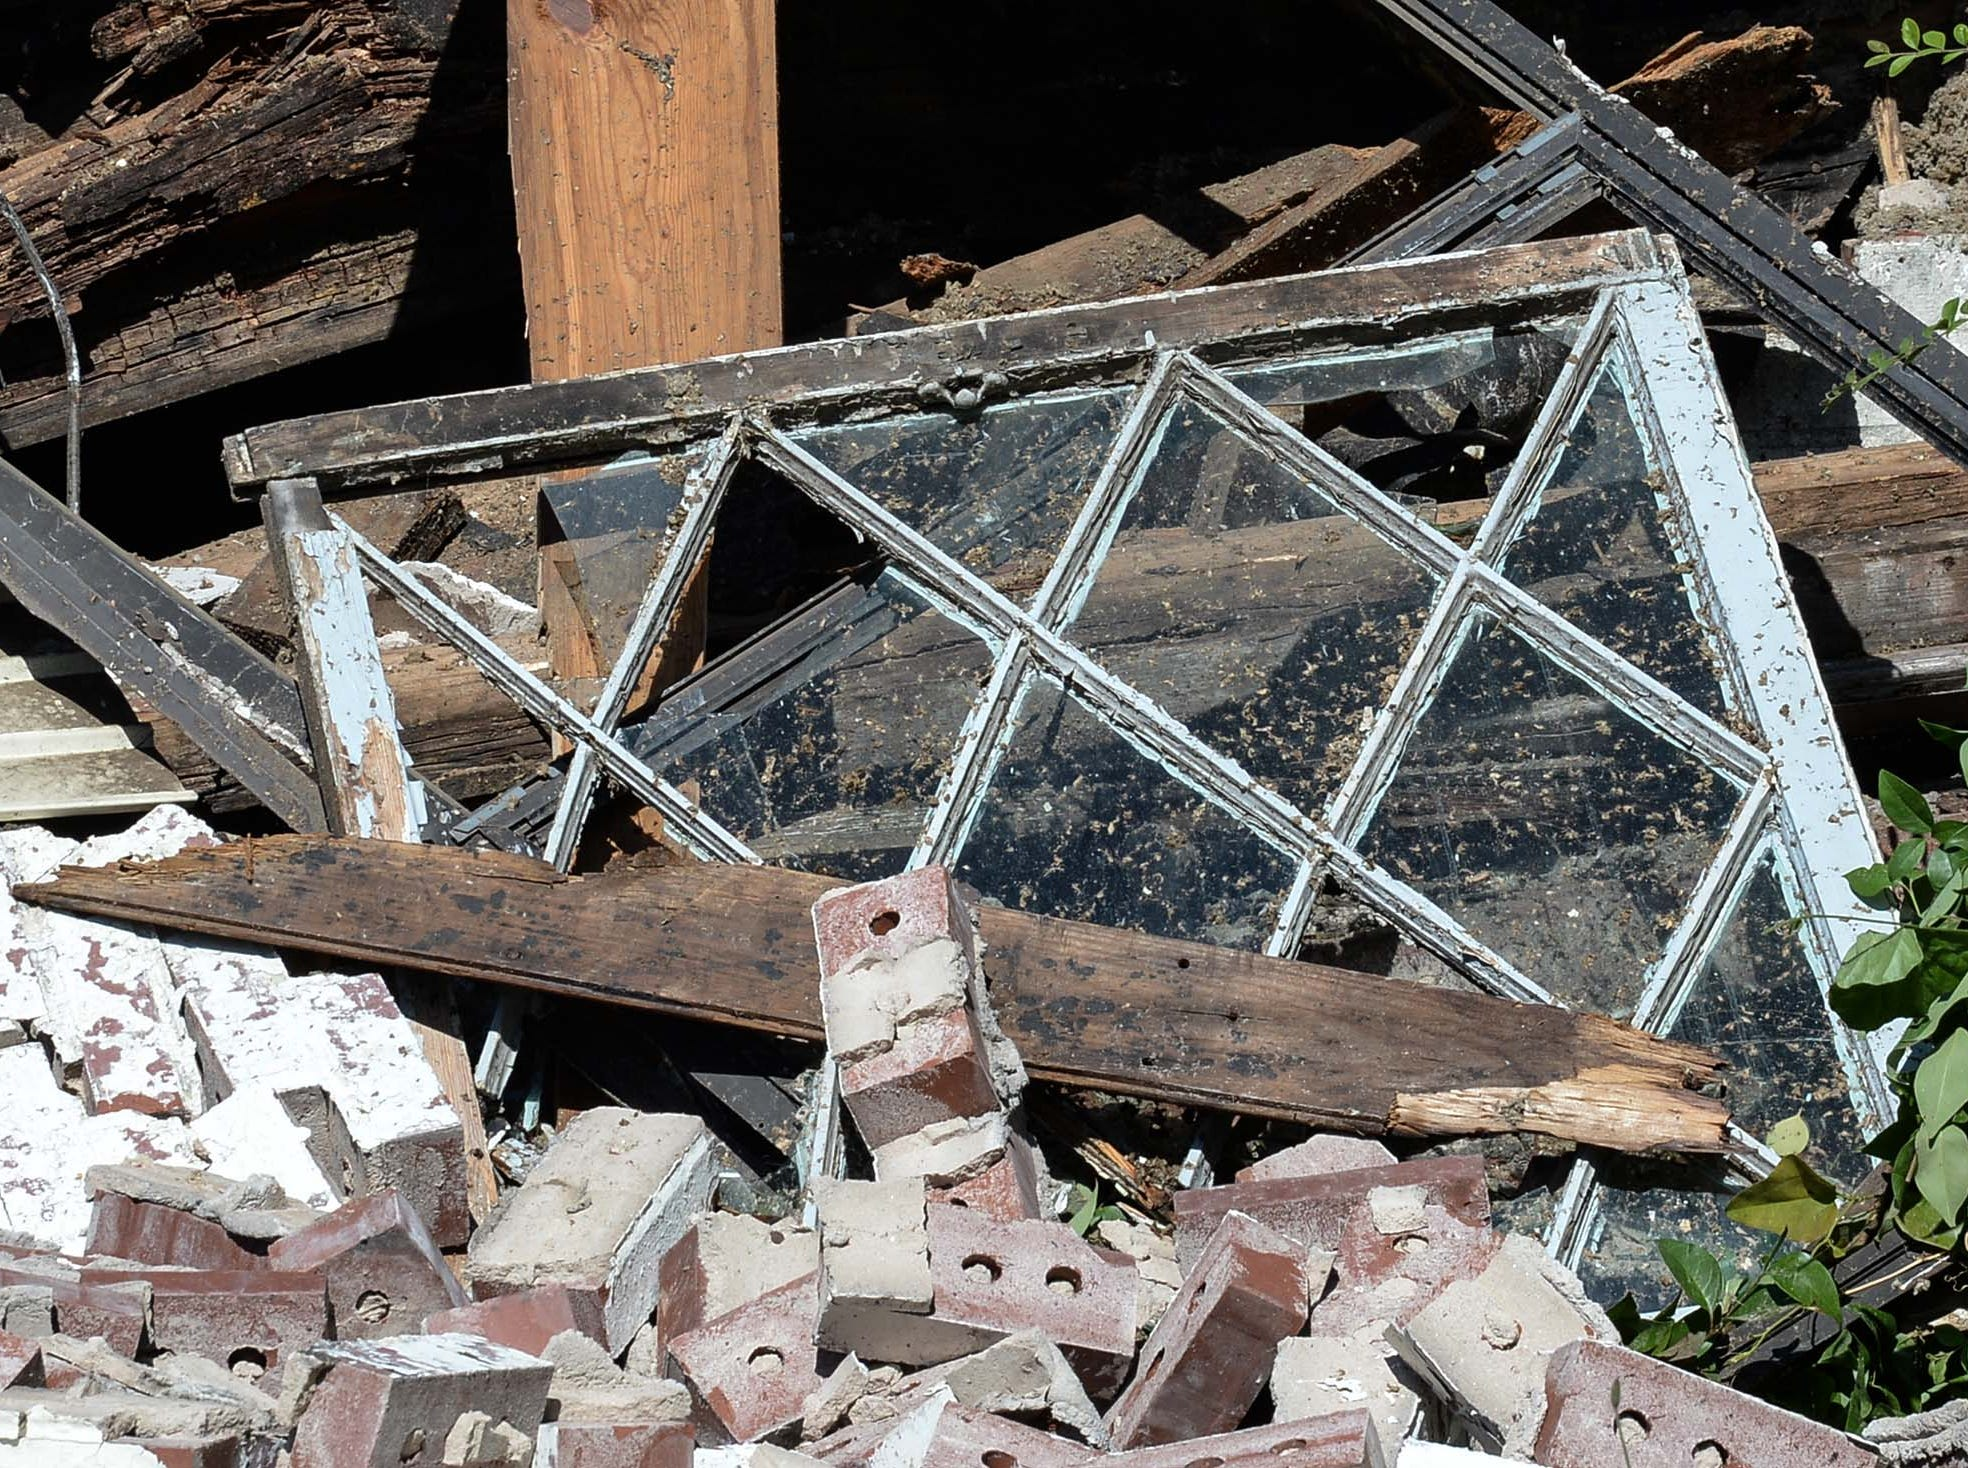 Debris and an old window before being taken to the Starr landfill, after demolition of the 600 South Main Street building Monday in Anderson. The building was used as a city planning and codes for years after McDougalds Funeral Home occupied it from 1934 to 1968 as their South Chapel.